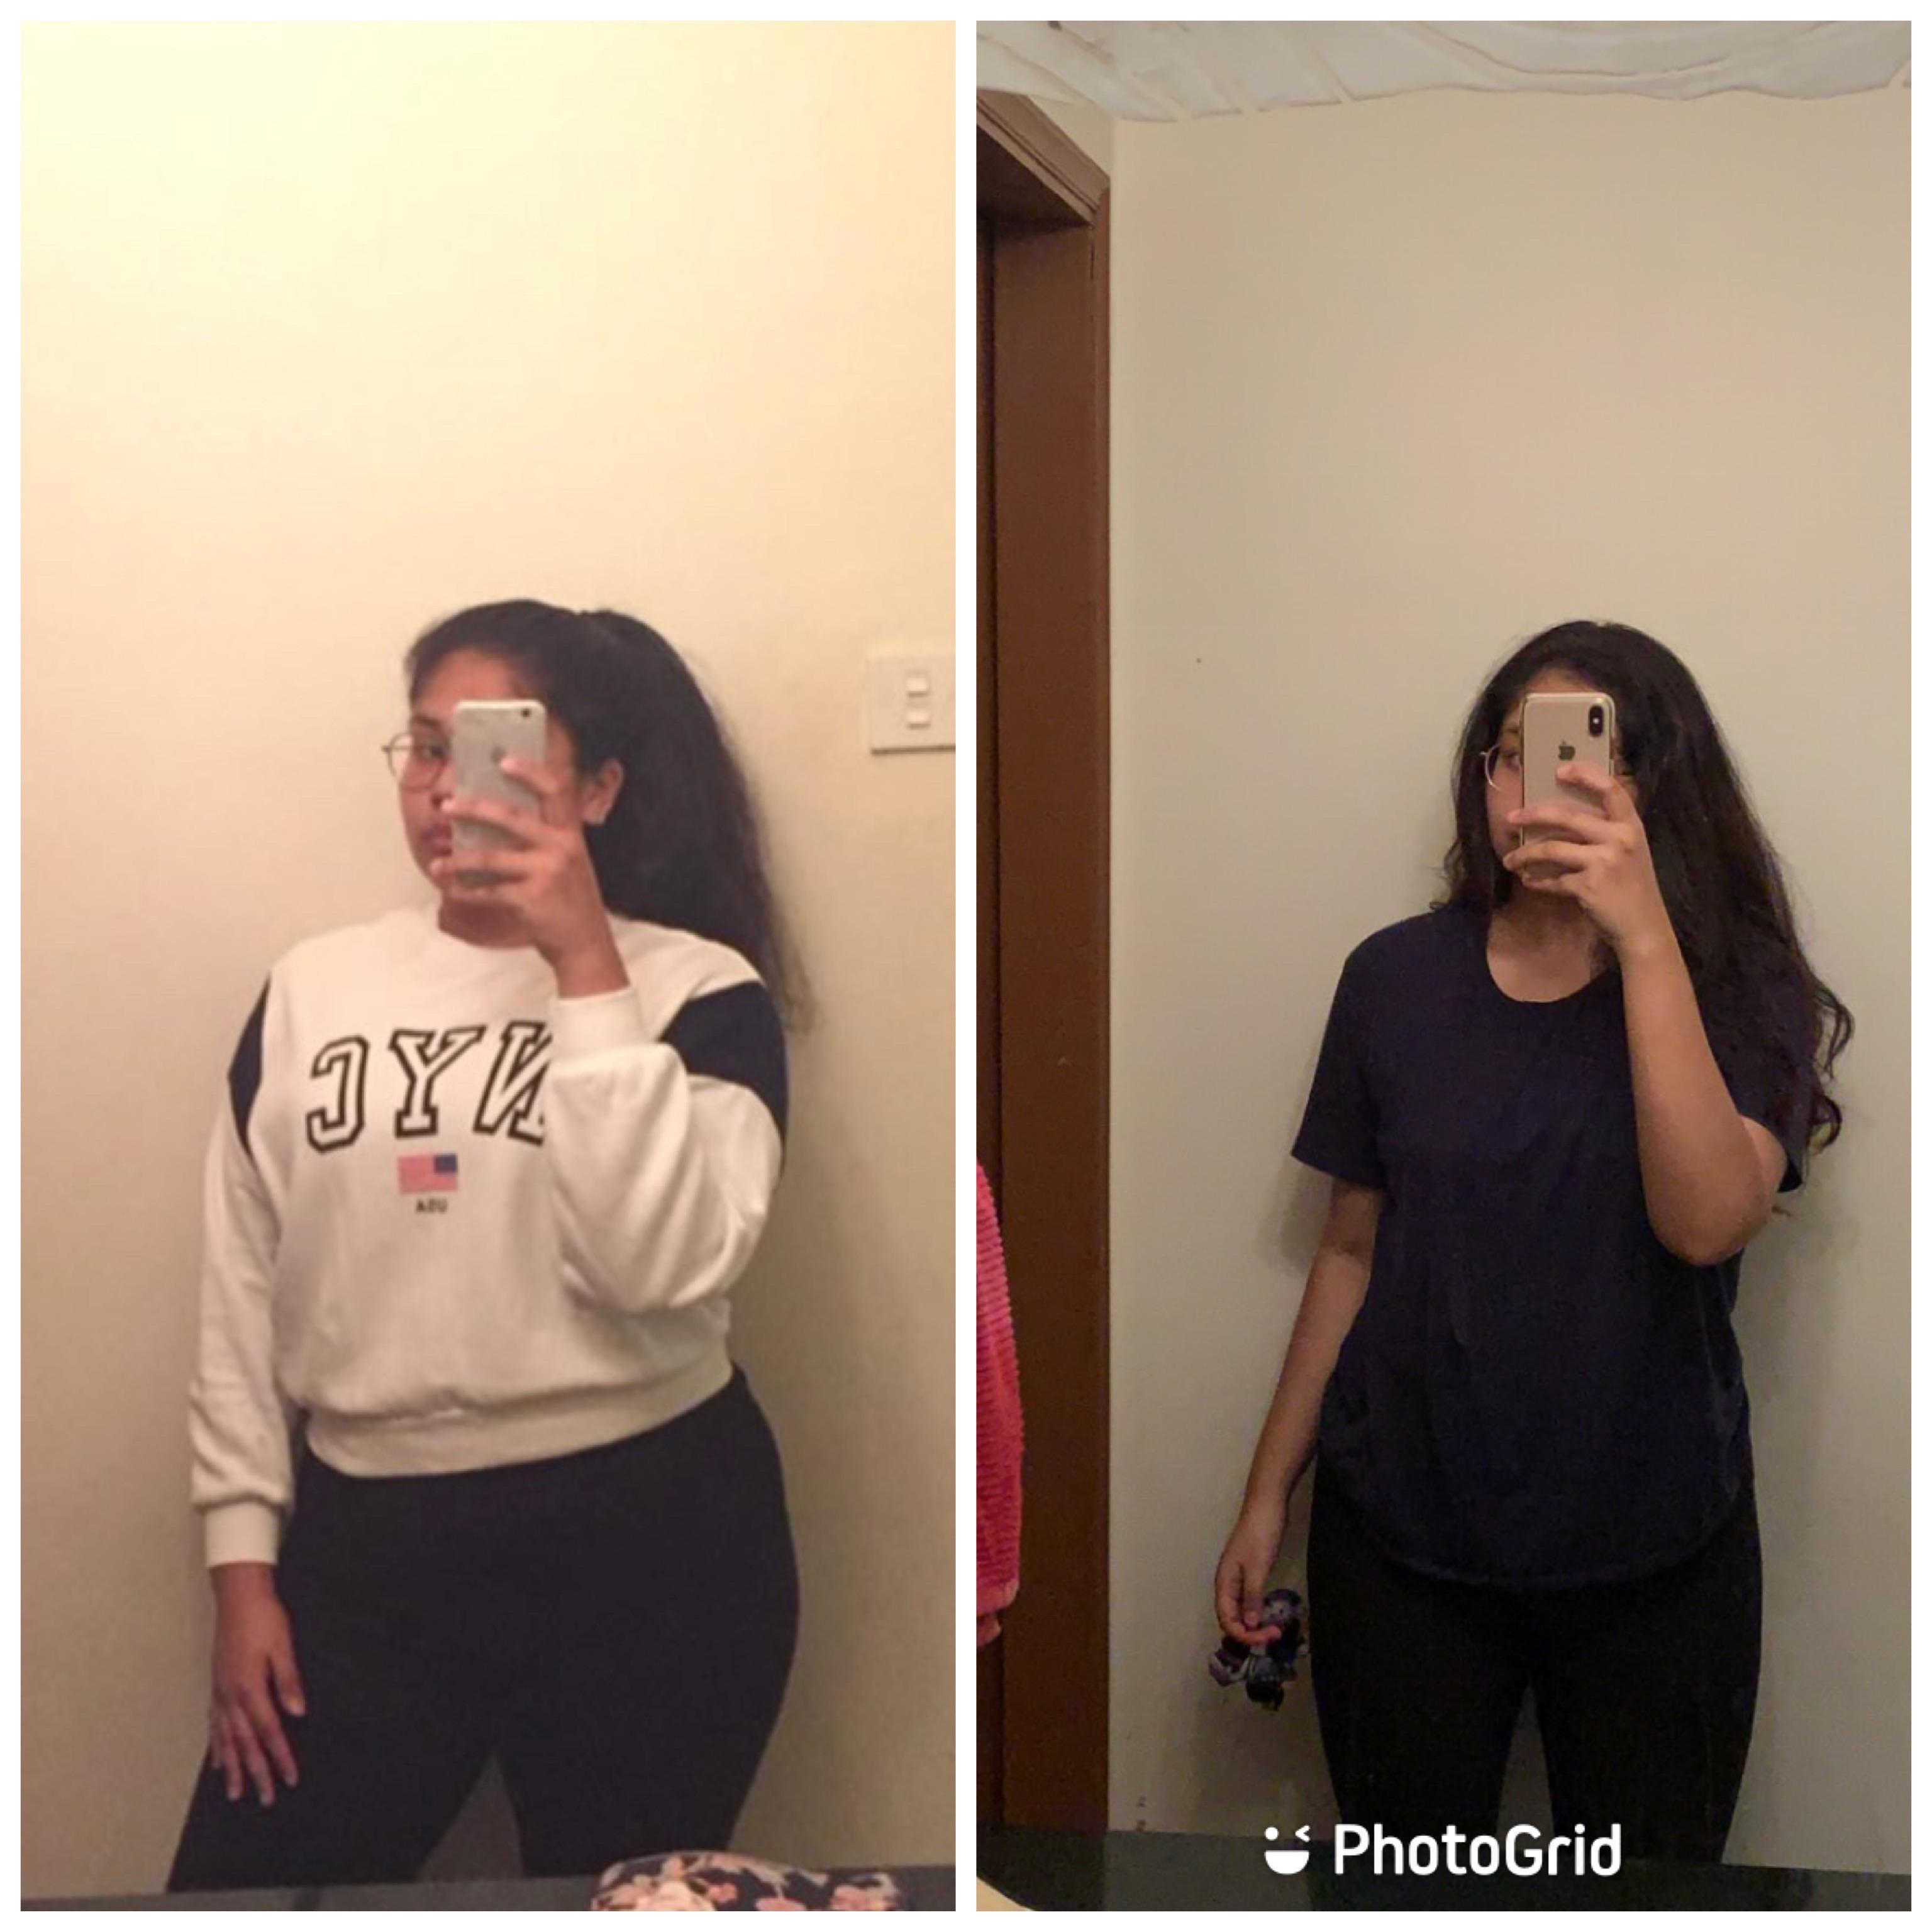 5 foot 6 Female 27 lbs Fat Loss Before and After 209 lbs to 182 lbs